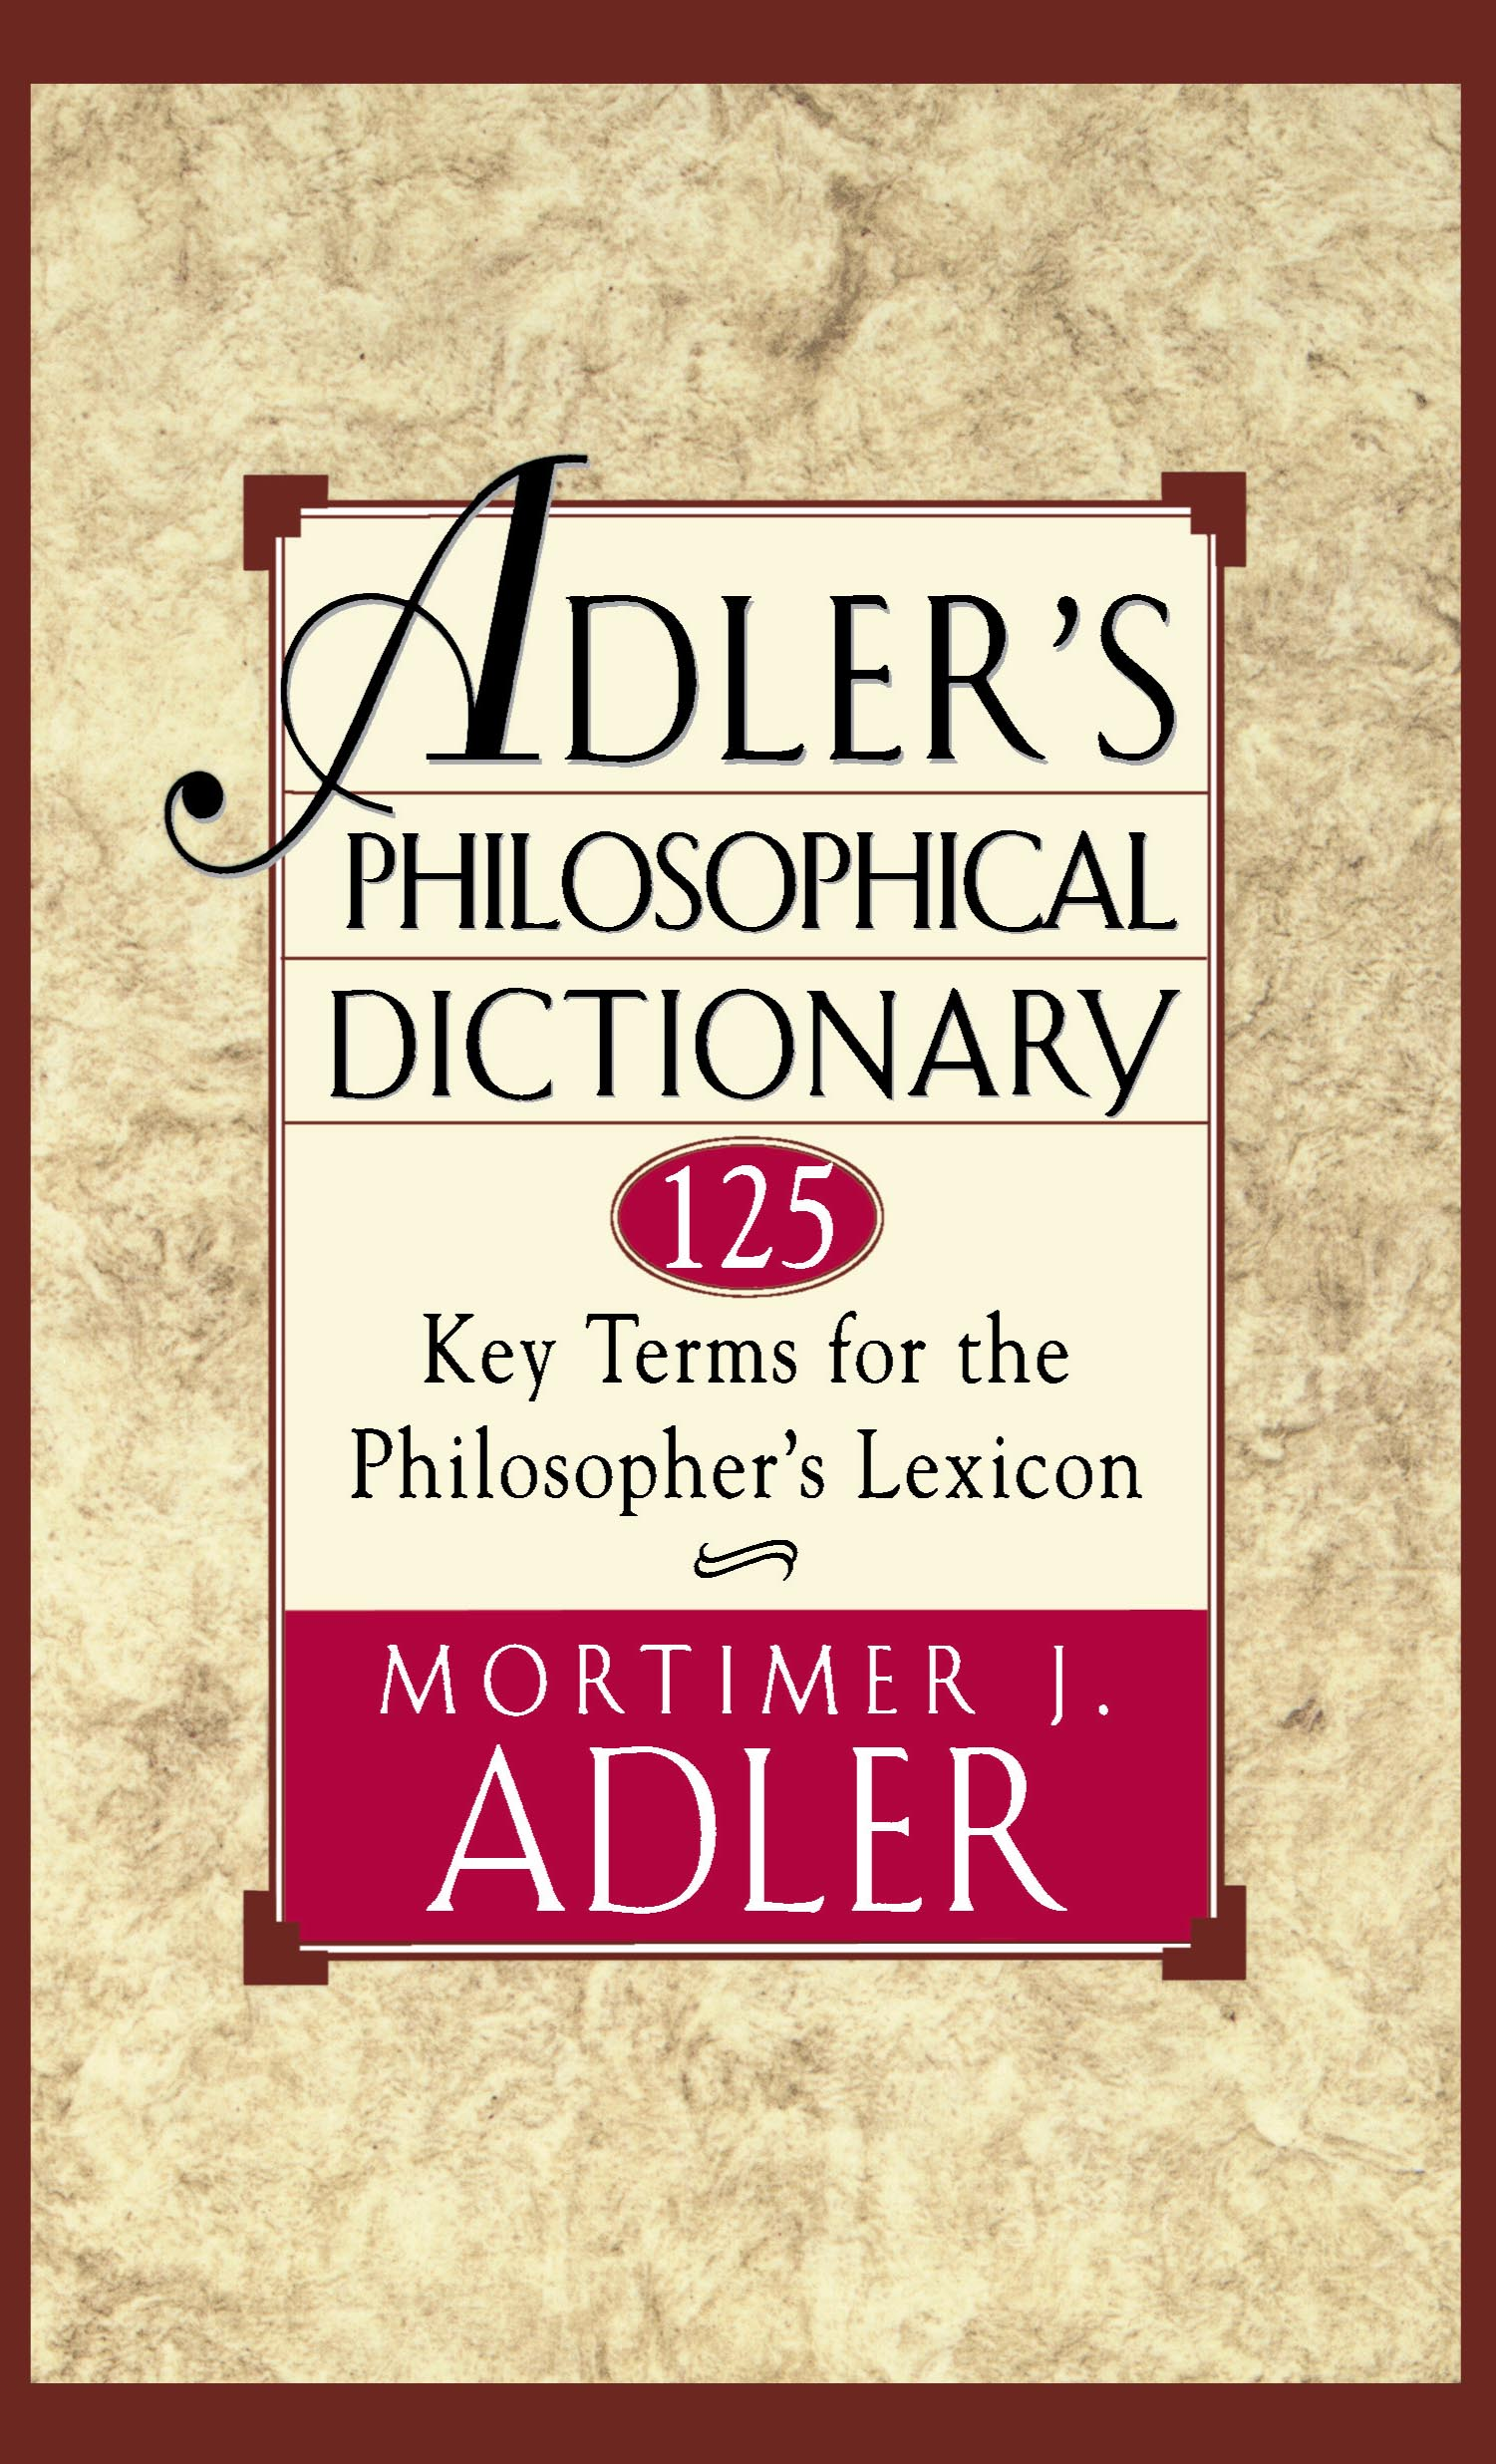 essay on adult education by mortimer j adler Essays for the 21st century on major contributions to adult education mortimer j adler earned an undergraduate degree in philosophy at.